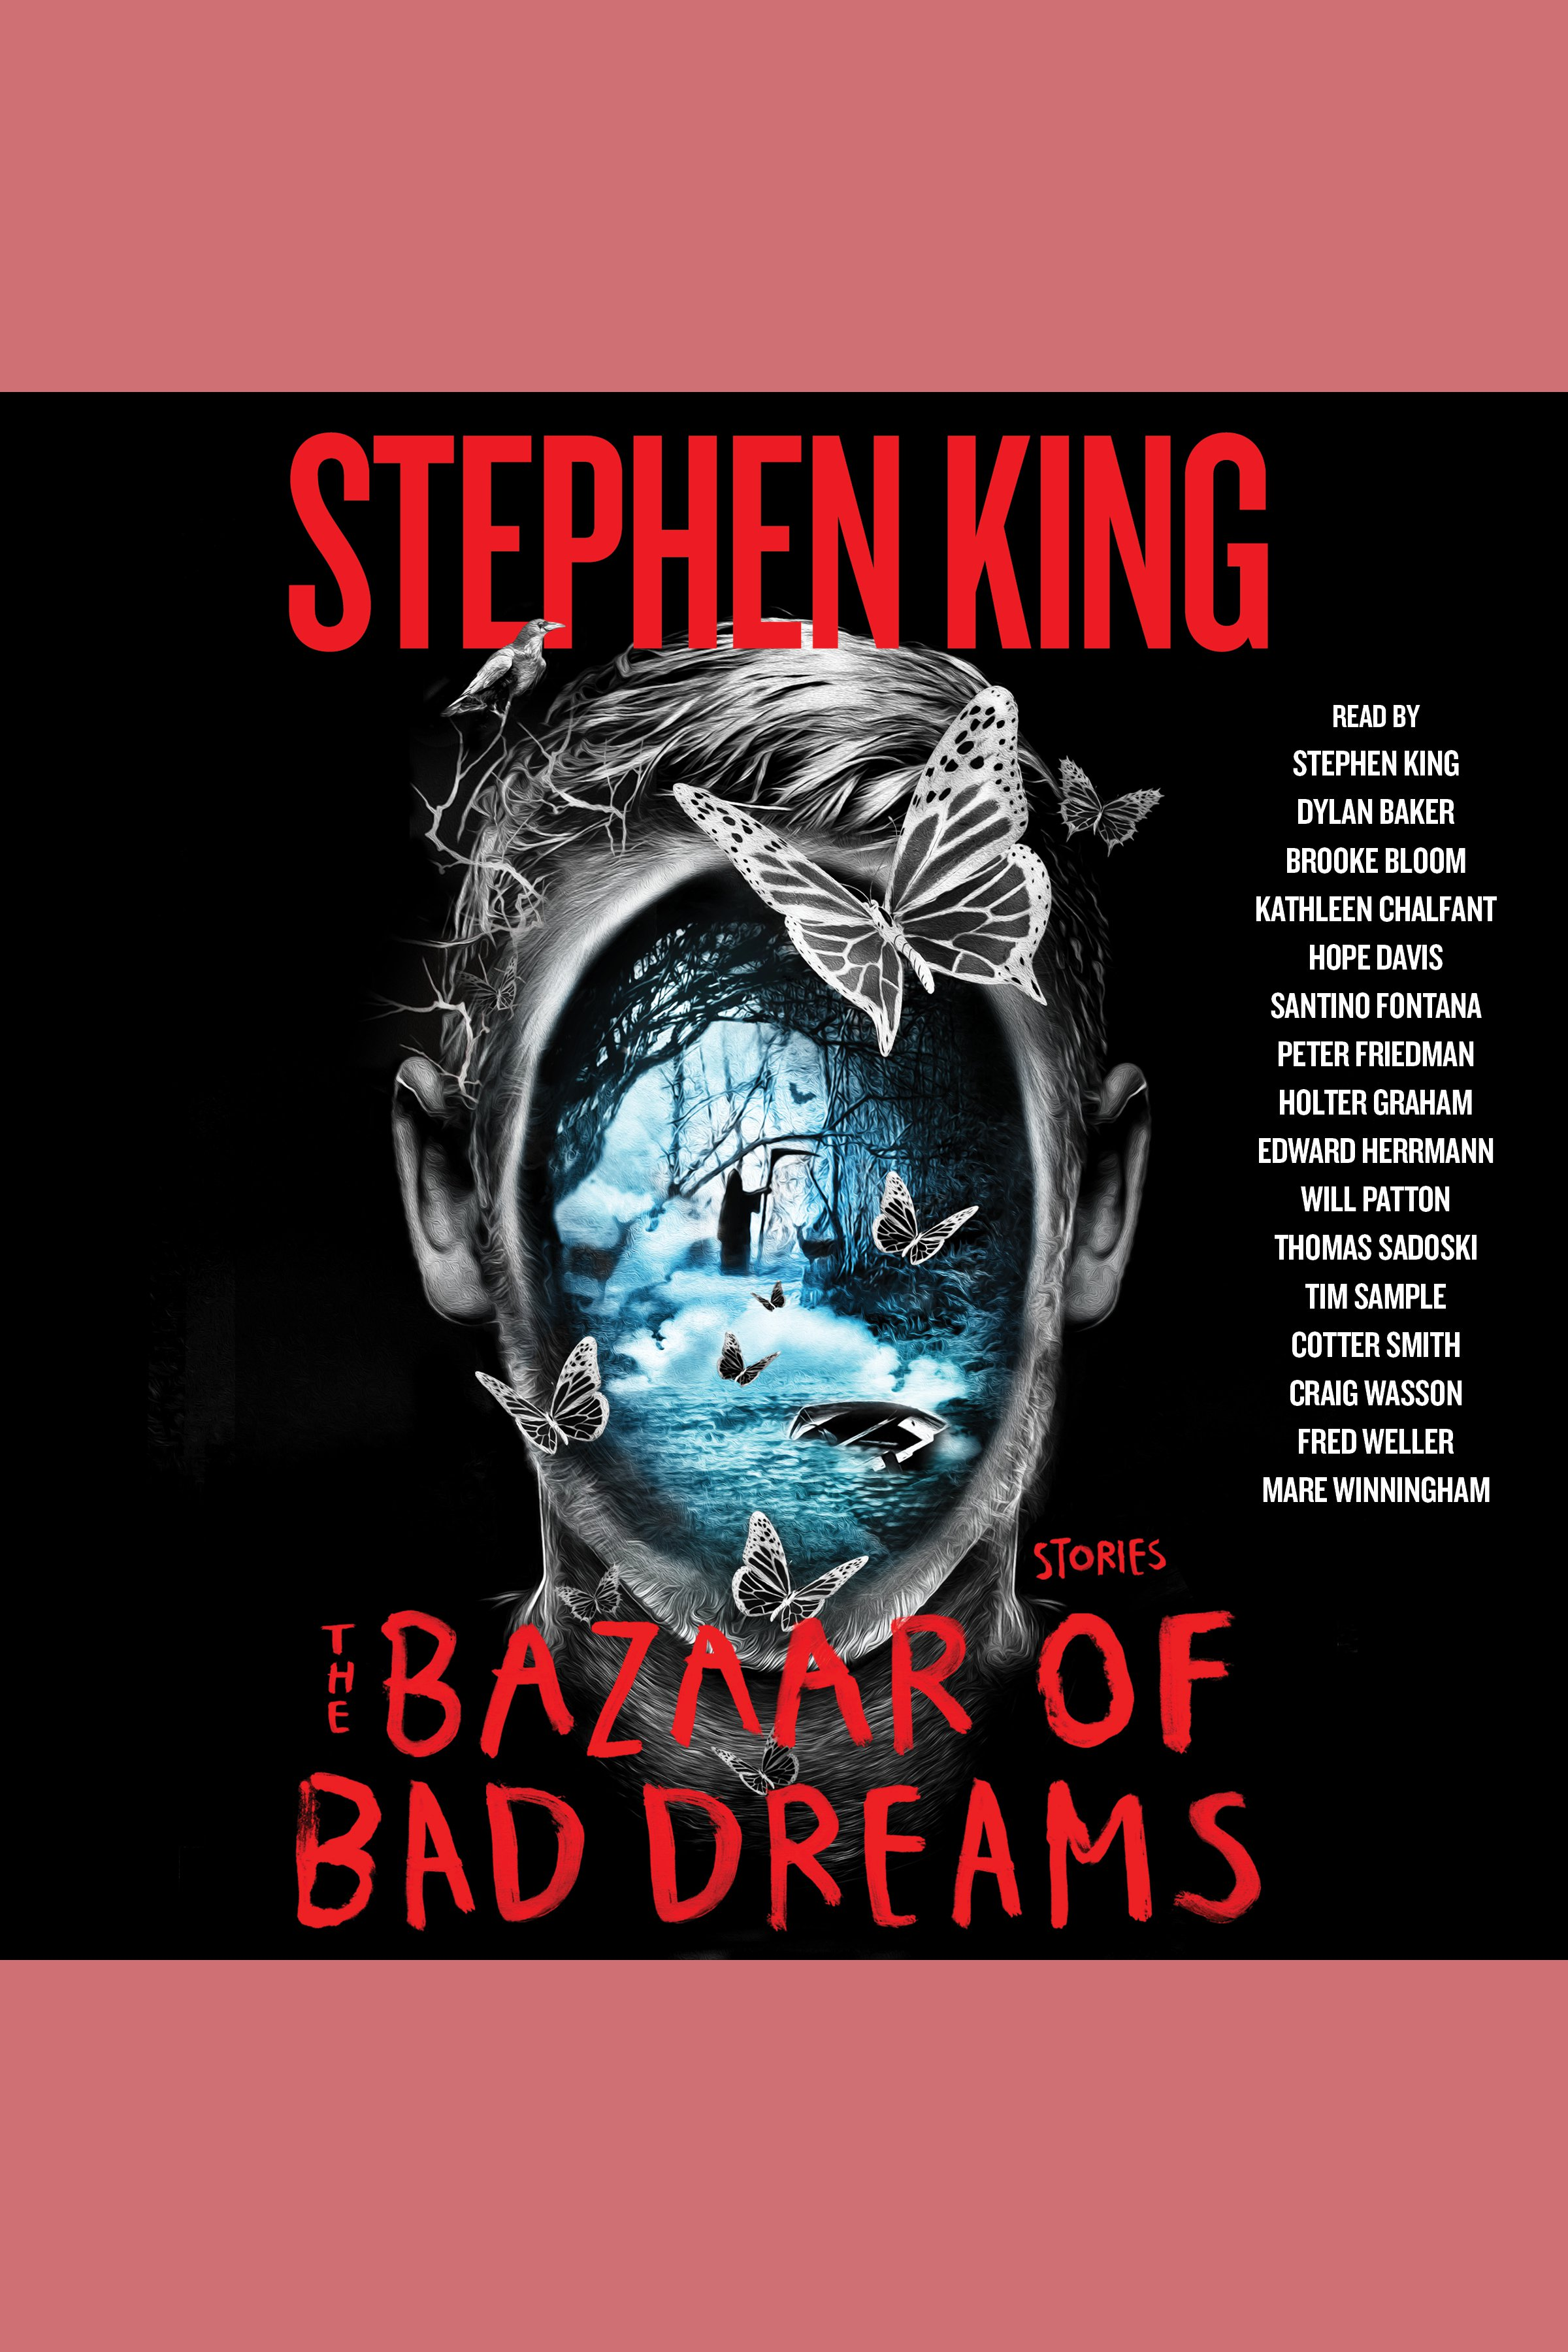 Cover Image of The Bazaar of Bad Dreams